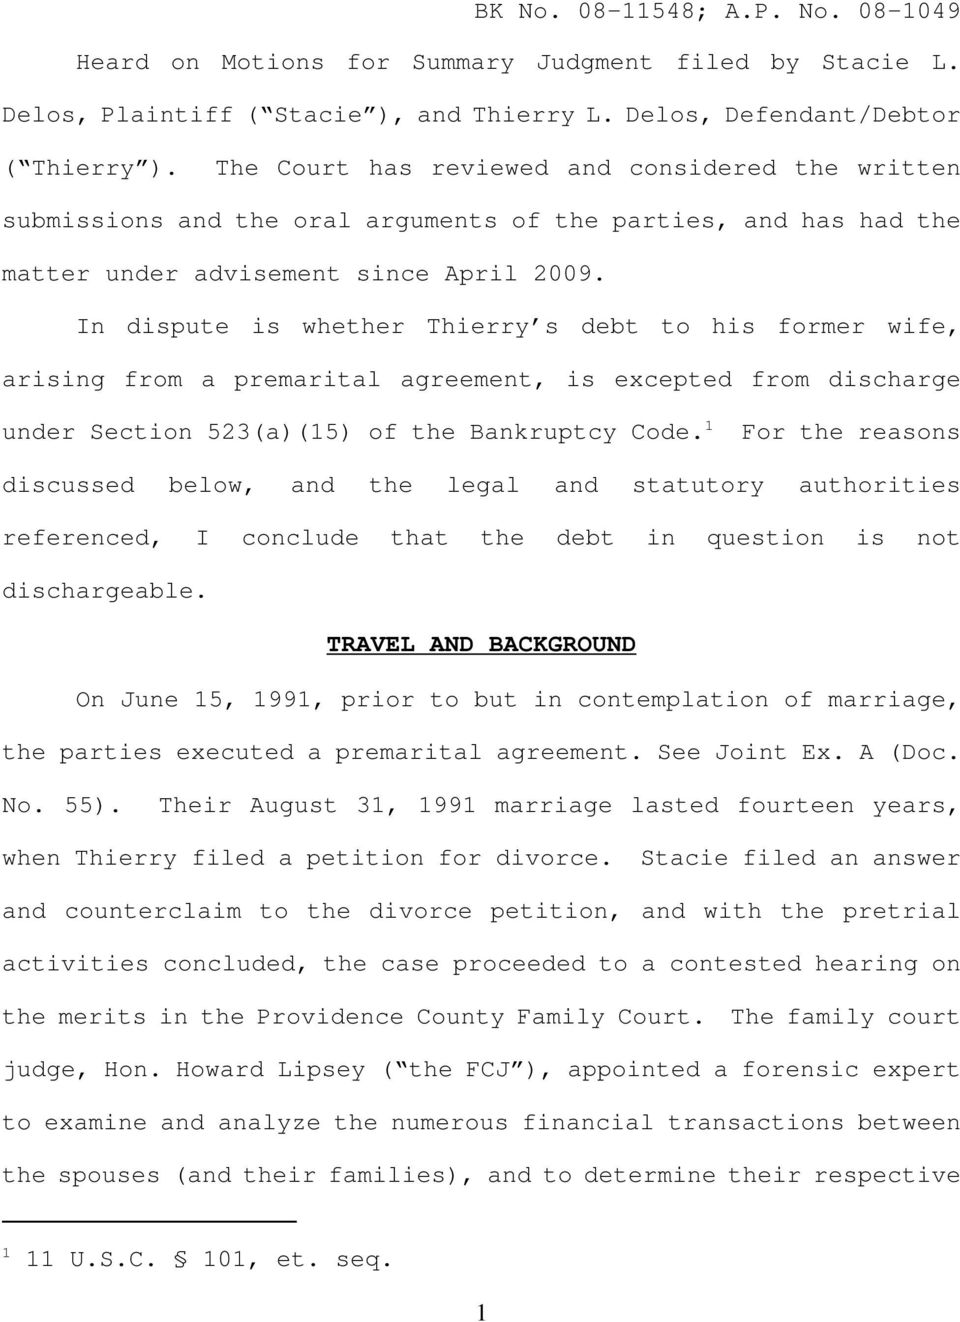 In dispute is whether Thierry s debt to his former wife, arising from a premarital agreement, is excepted from discharge under Section 523(a)(15) of the Bankruptcy Code.